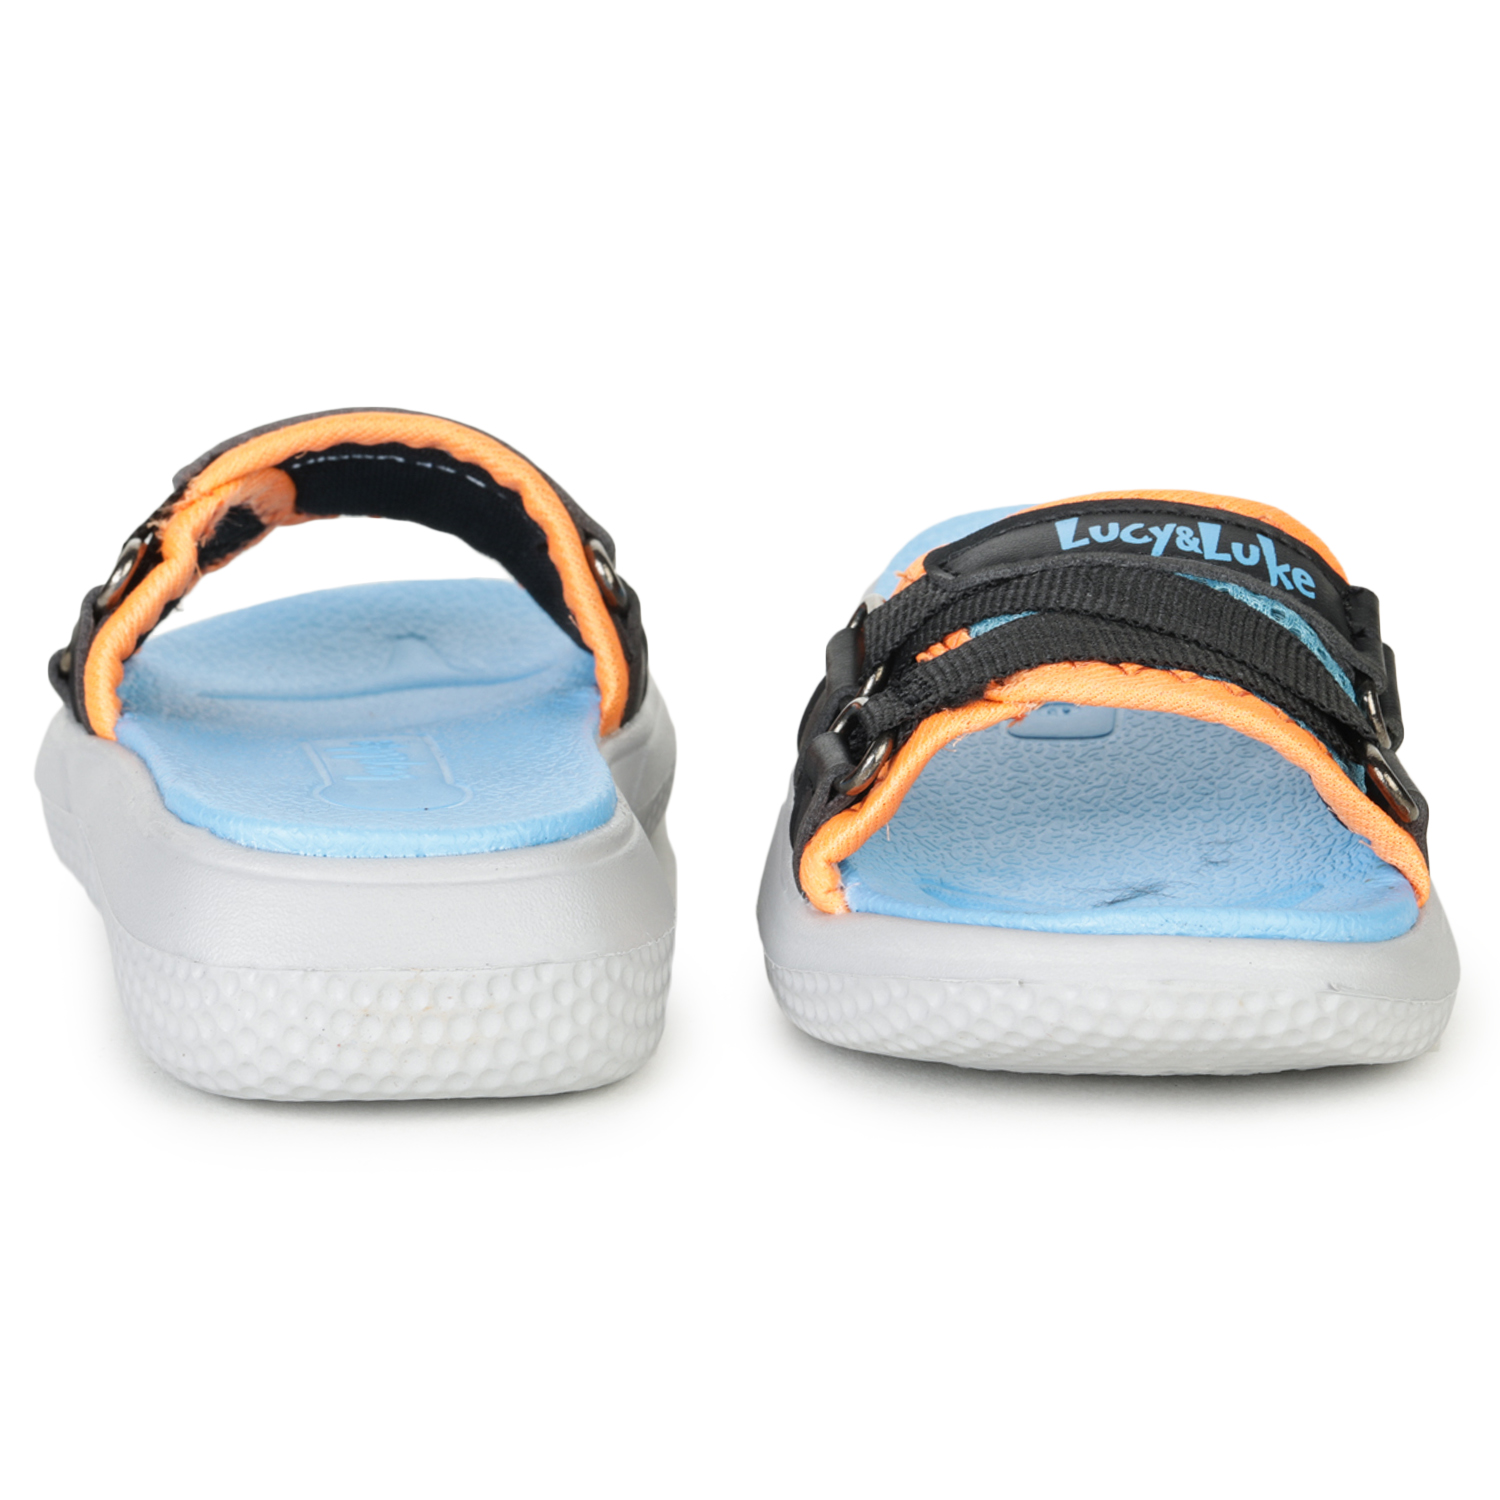 Liberty | Liberty Lucy & Luke Slippers HIPPO-12S_S.Blue For - Kids